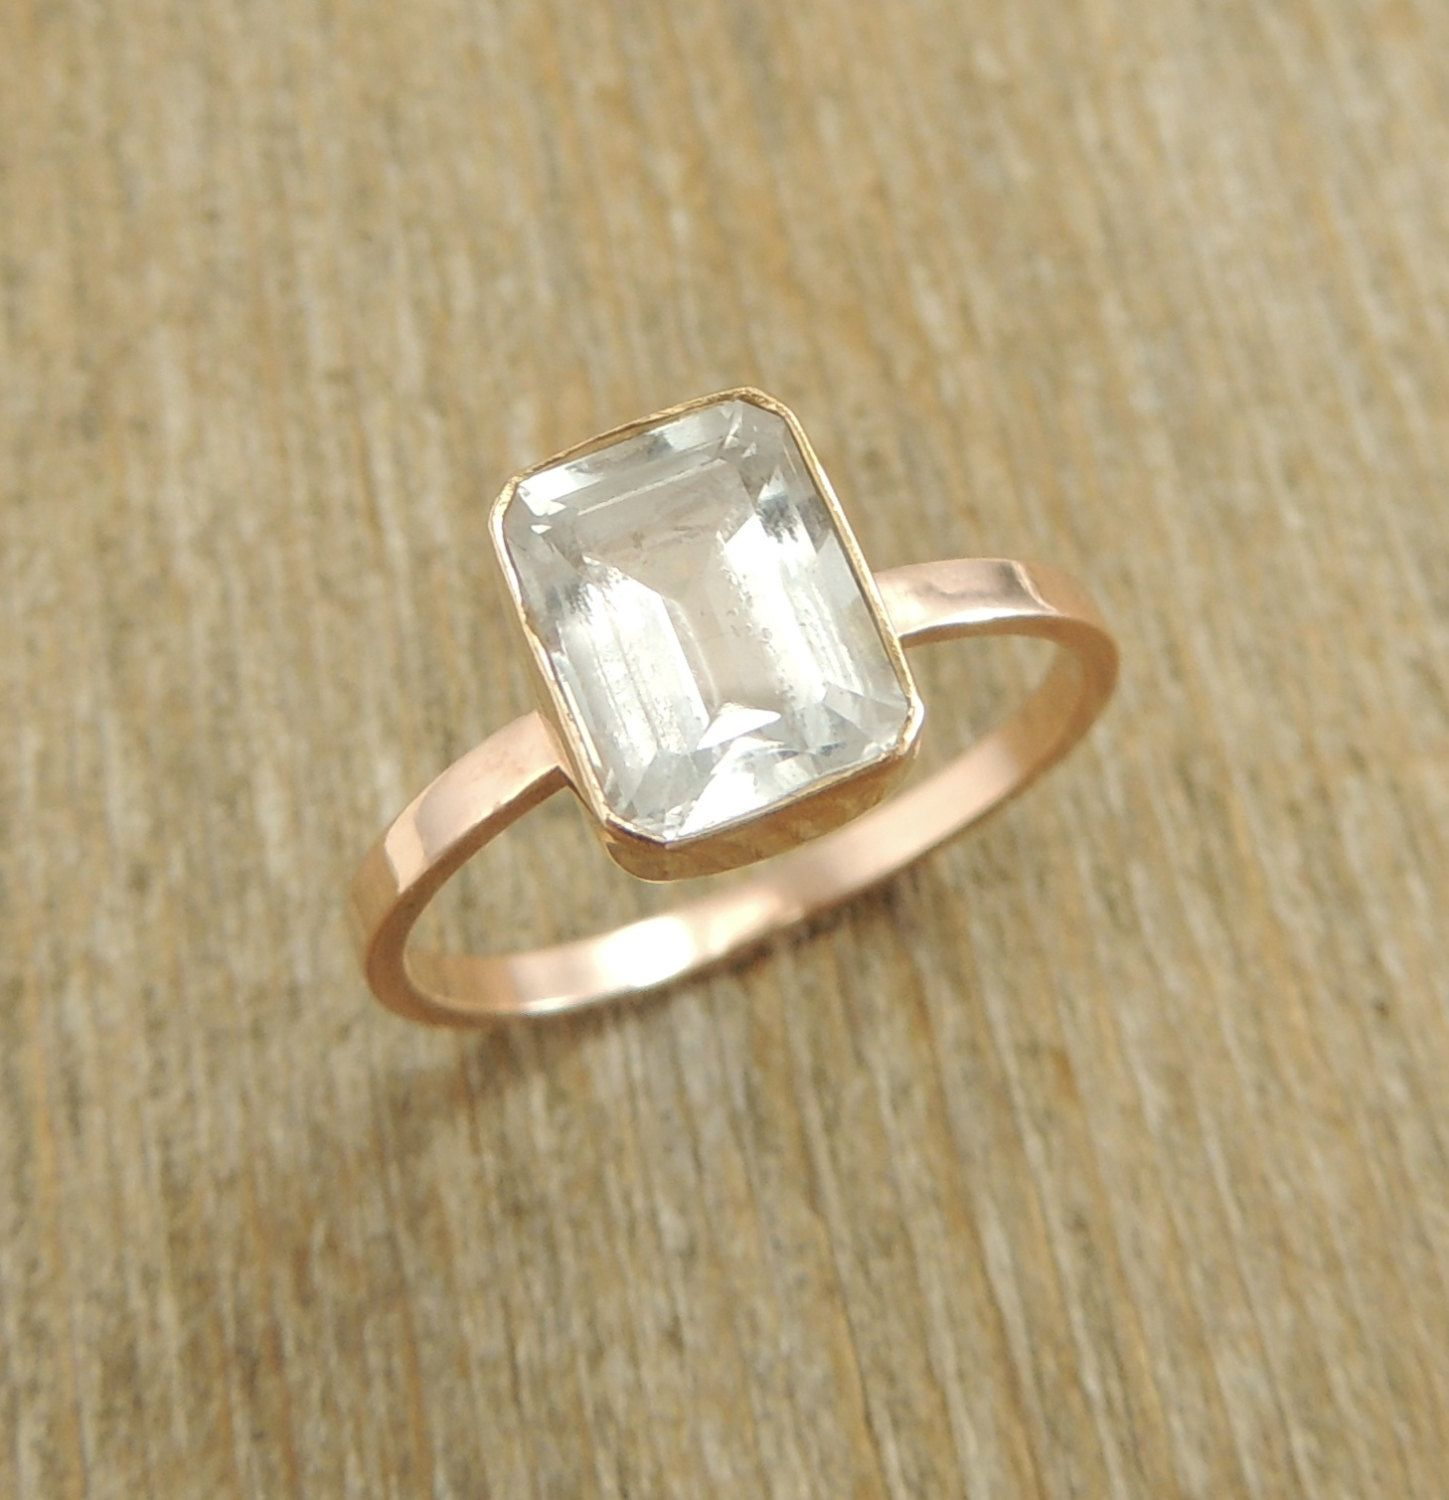 Emerald Cut White Topaz 14k Rose Gold Ring, Engagment Ring, Wedding Ring, Diamond Alternative, Rose Gold Engagement, Eco Friendly. $395.00, via Etsy.